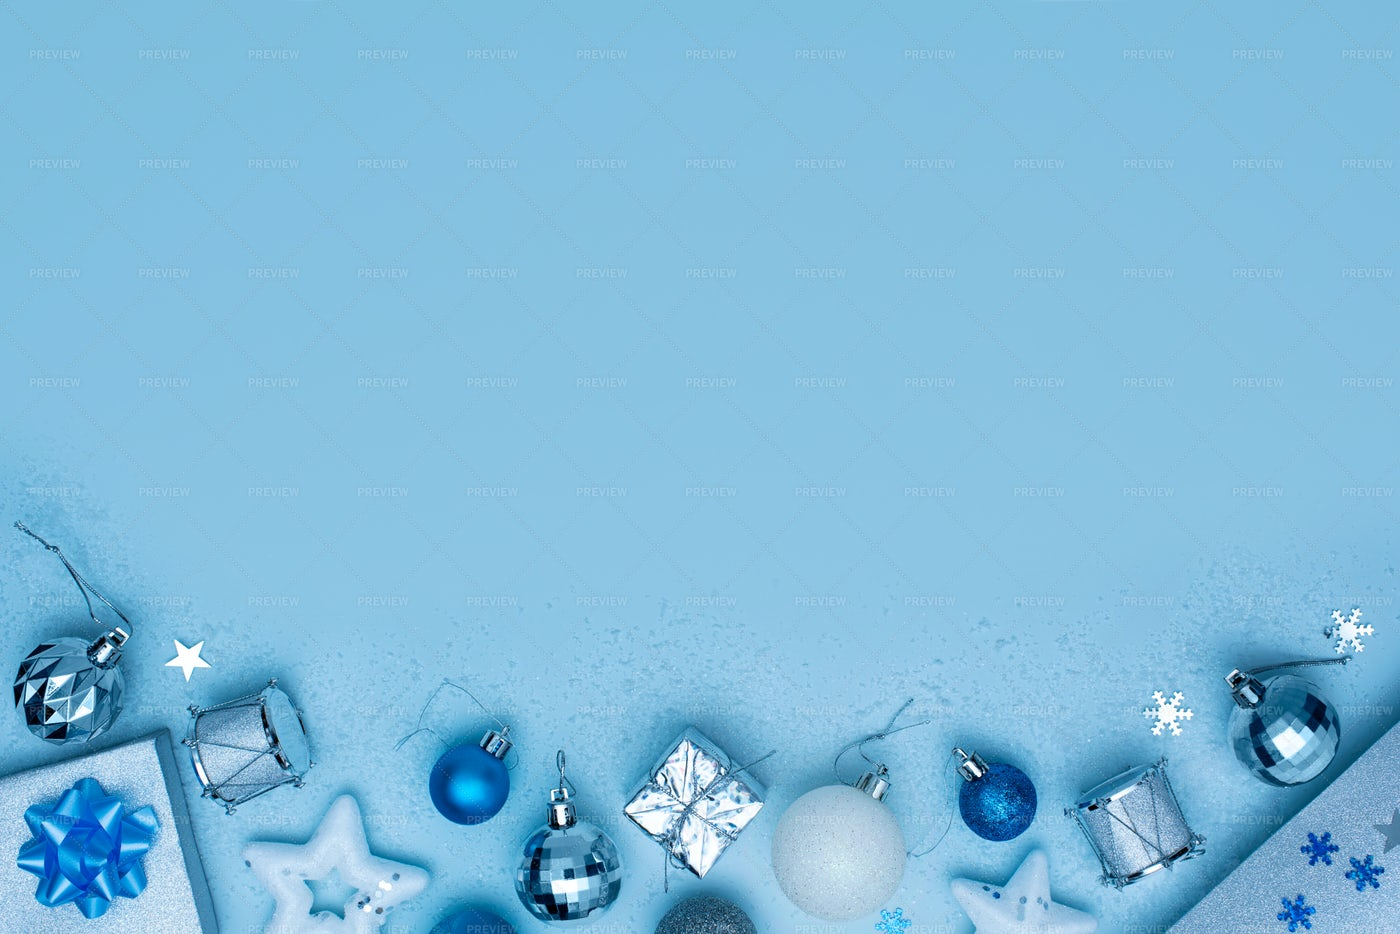 Blue And Silver Christmas Background: Stock Photos